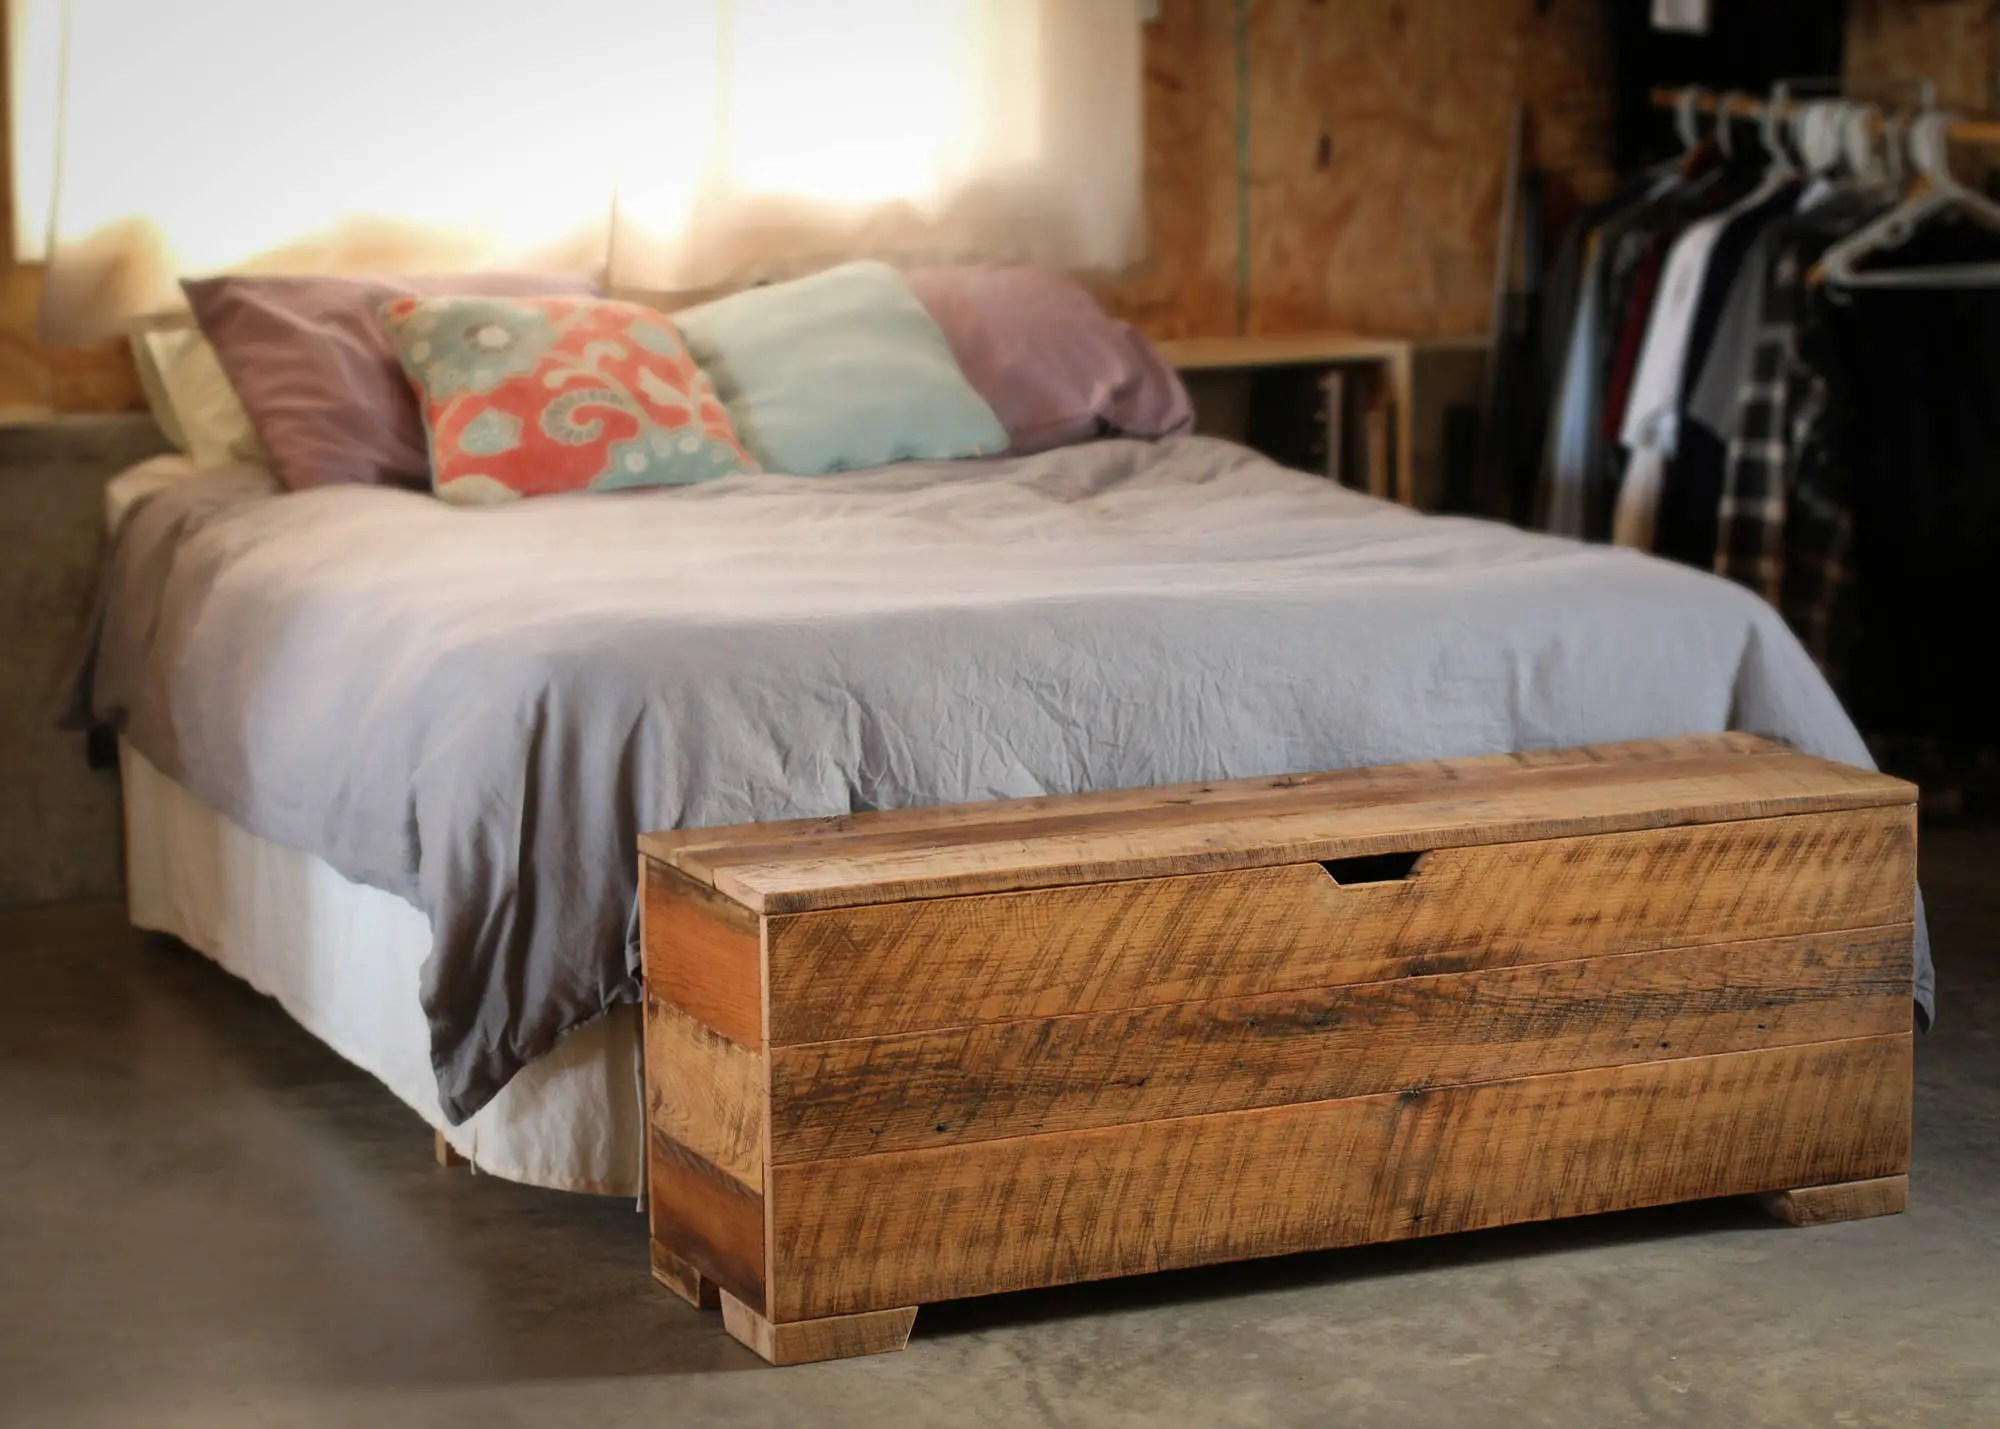 storage bench 50 bedroom bench hope chest end of bed bench bedroom storage bench trunk barn wood reclaimed wood barn wood